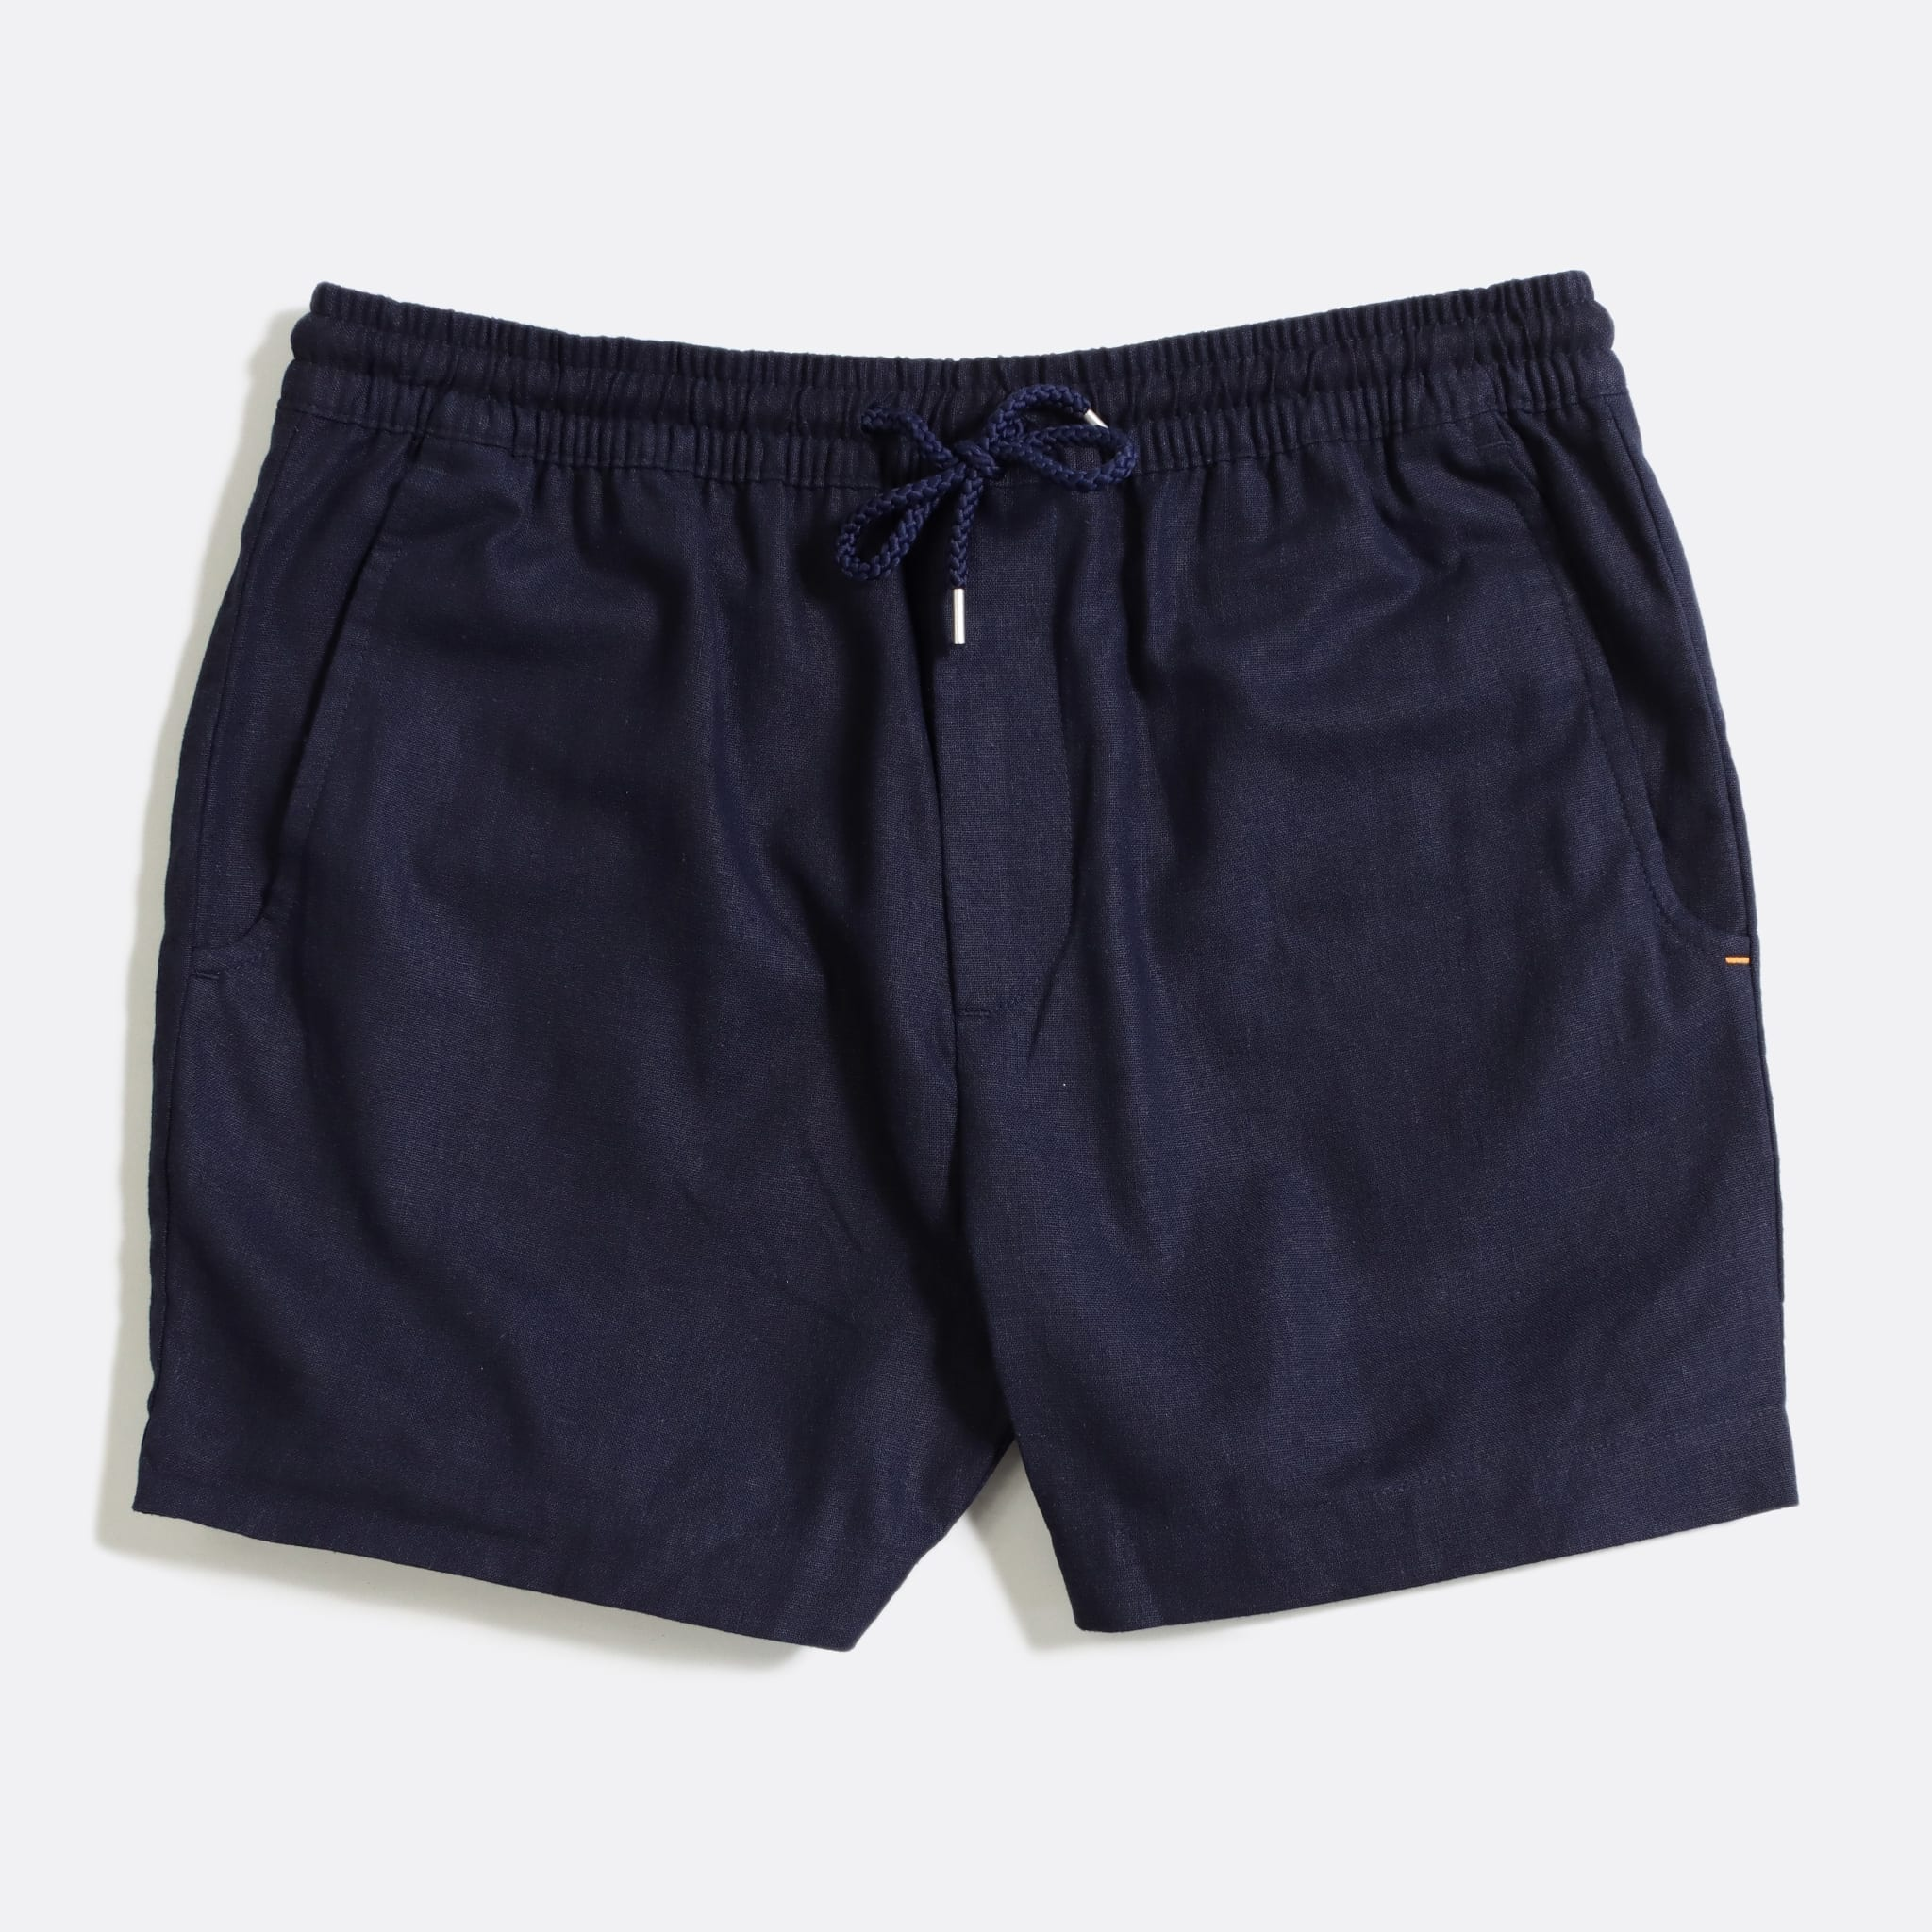 Far Afield House Shorts a Ensign Blue Linen Fabric Casual Basics